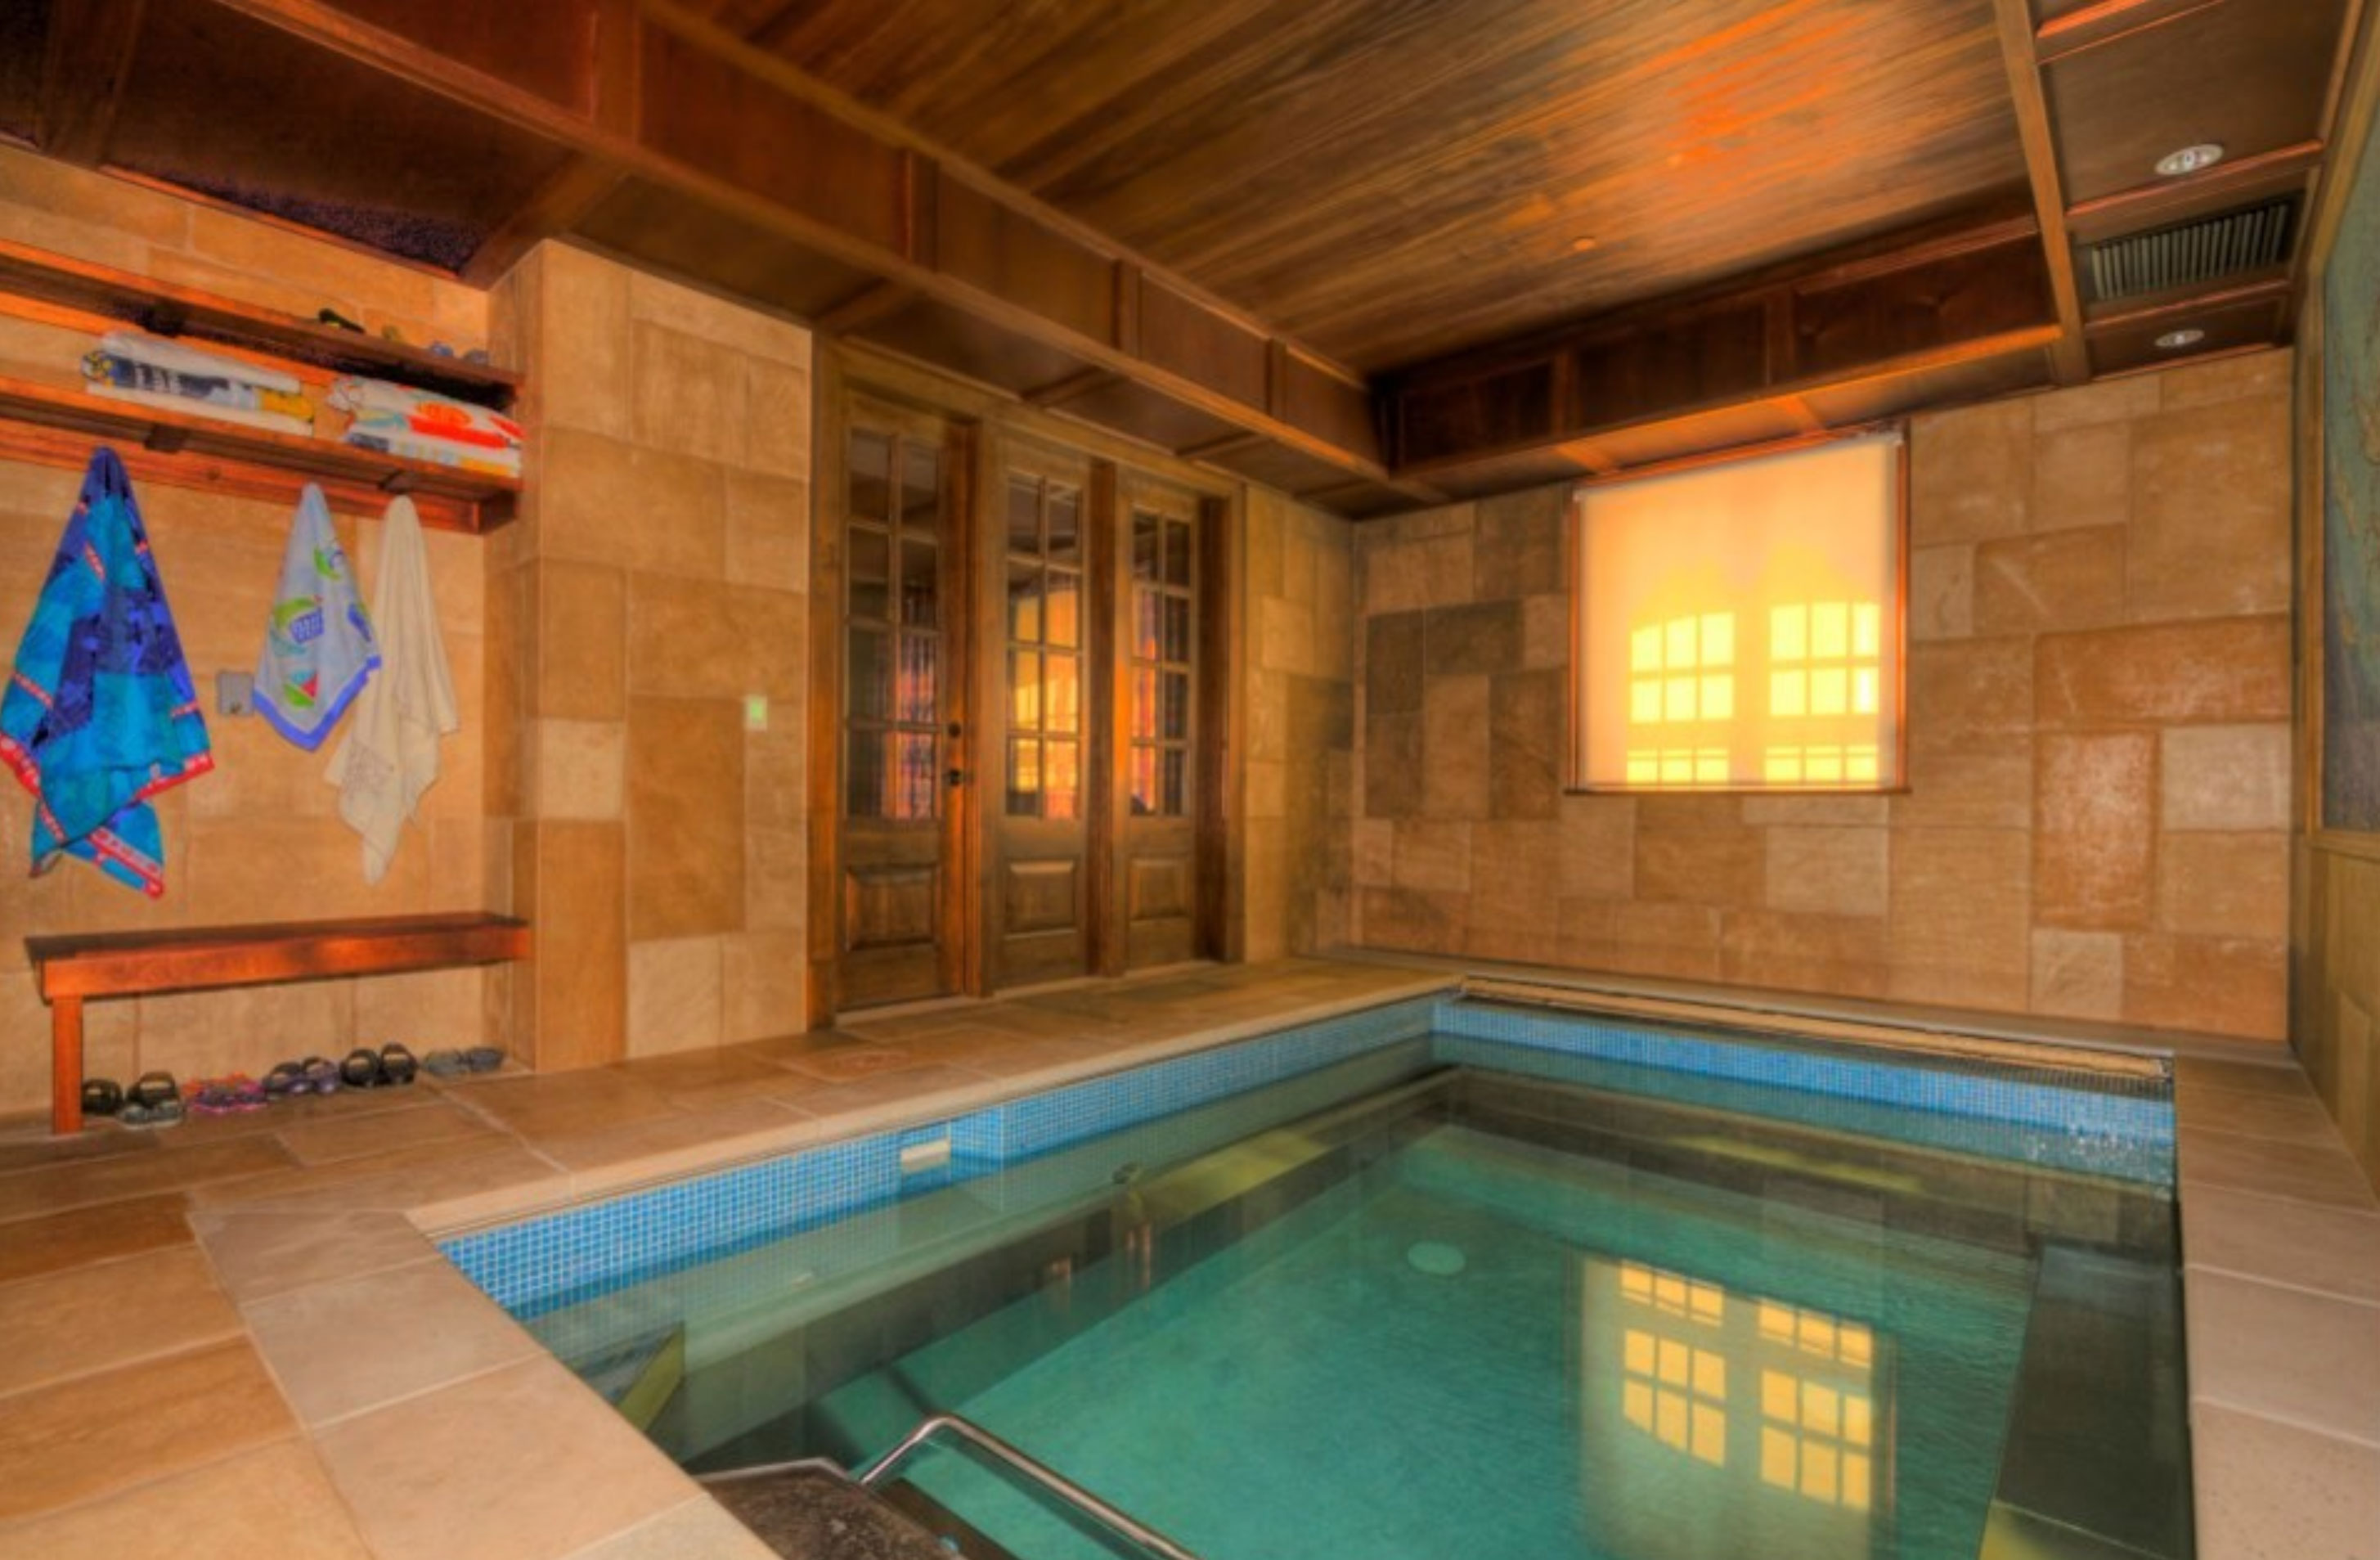 Indoor Pool And Hot Tub Ideas Swim With Style At Home Home Remodeling Contractors Sebring Design Build